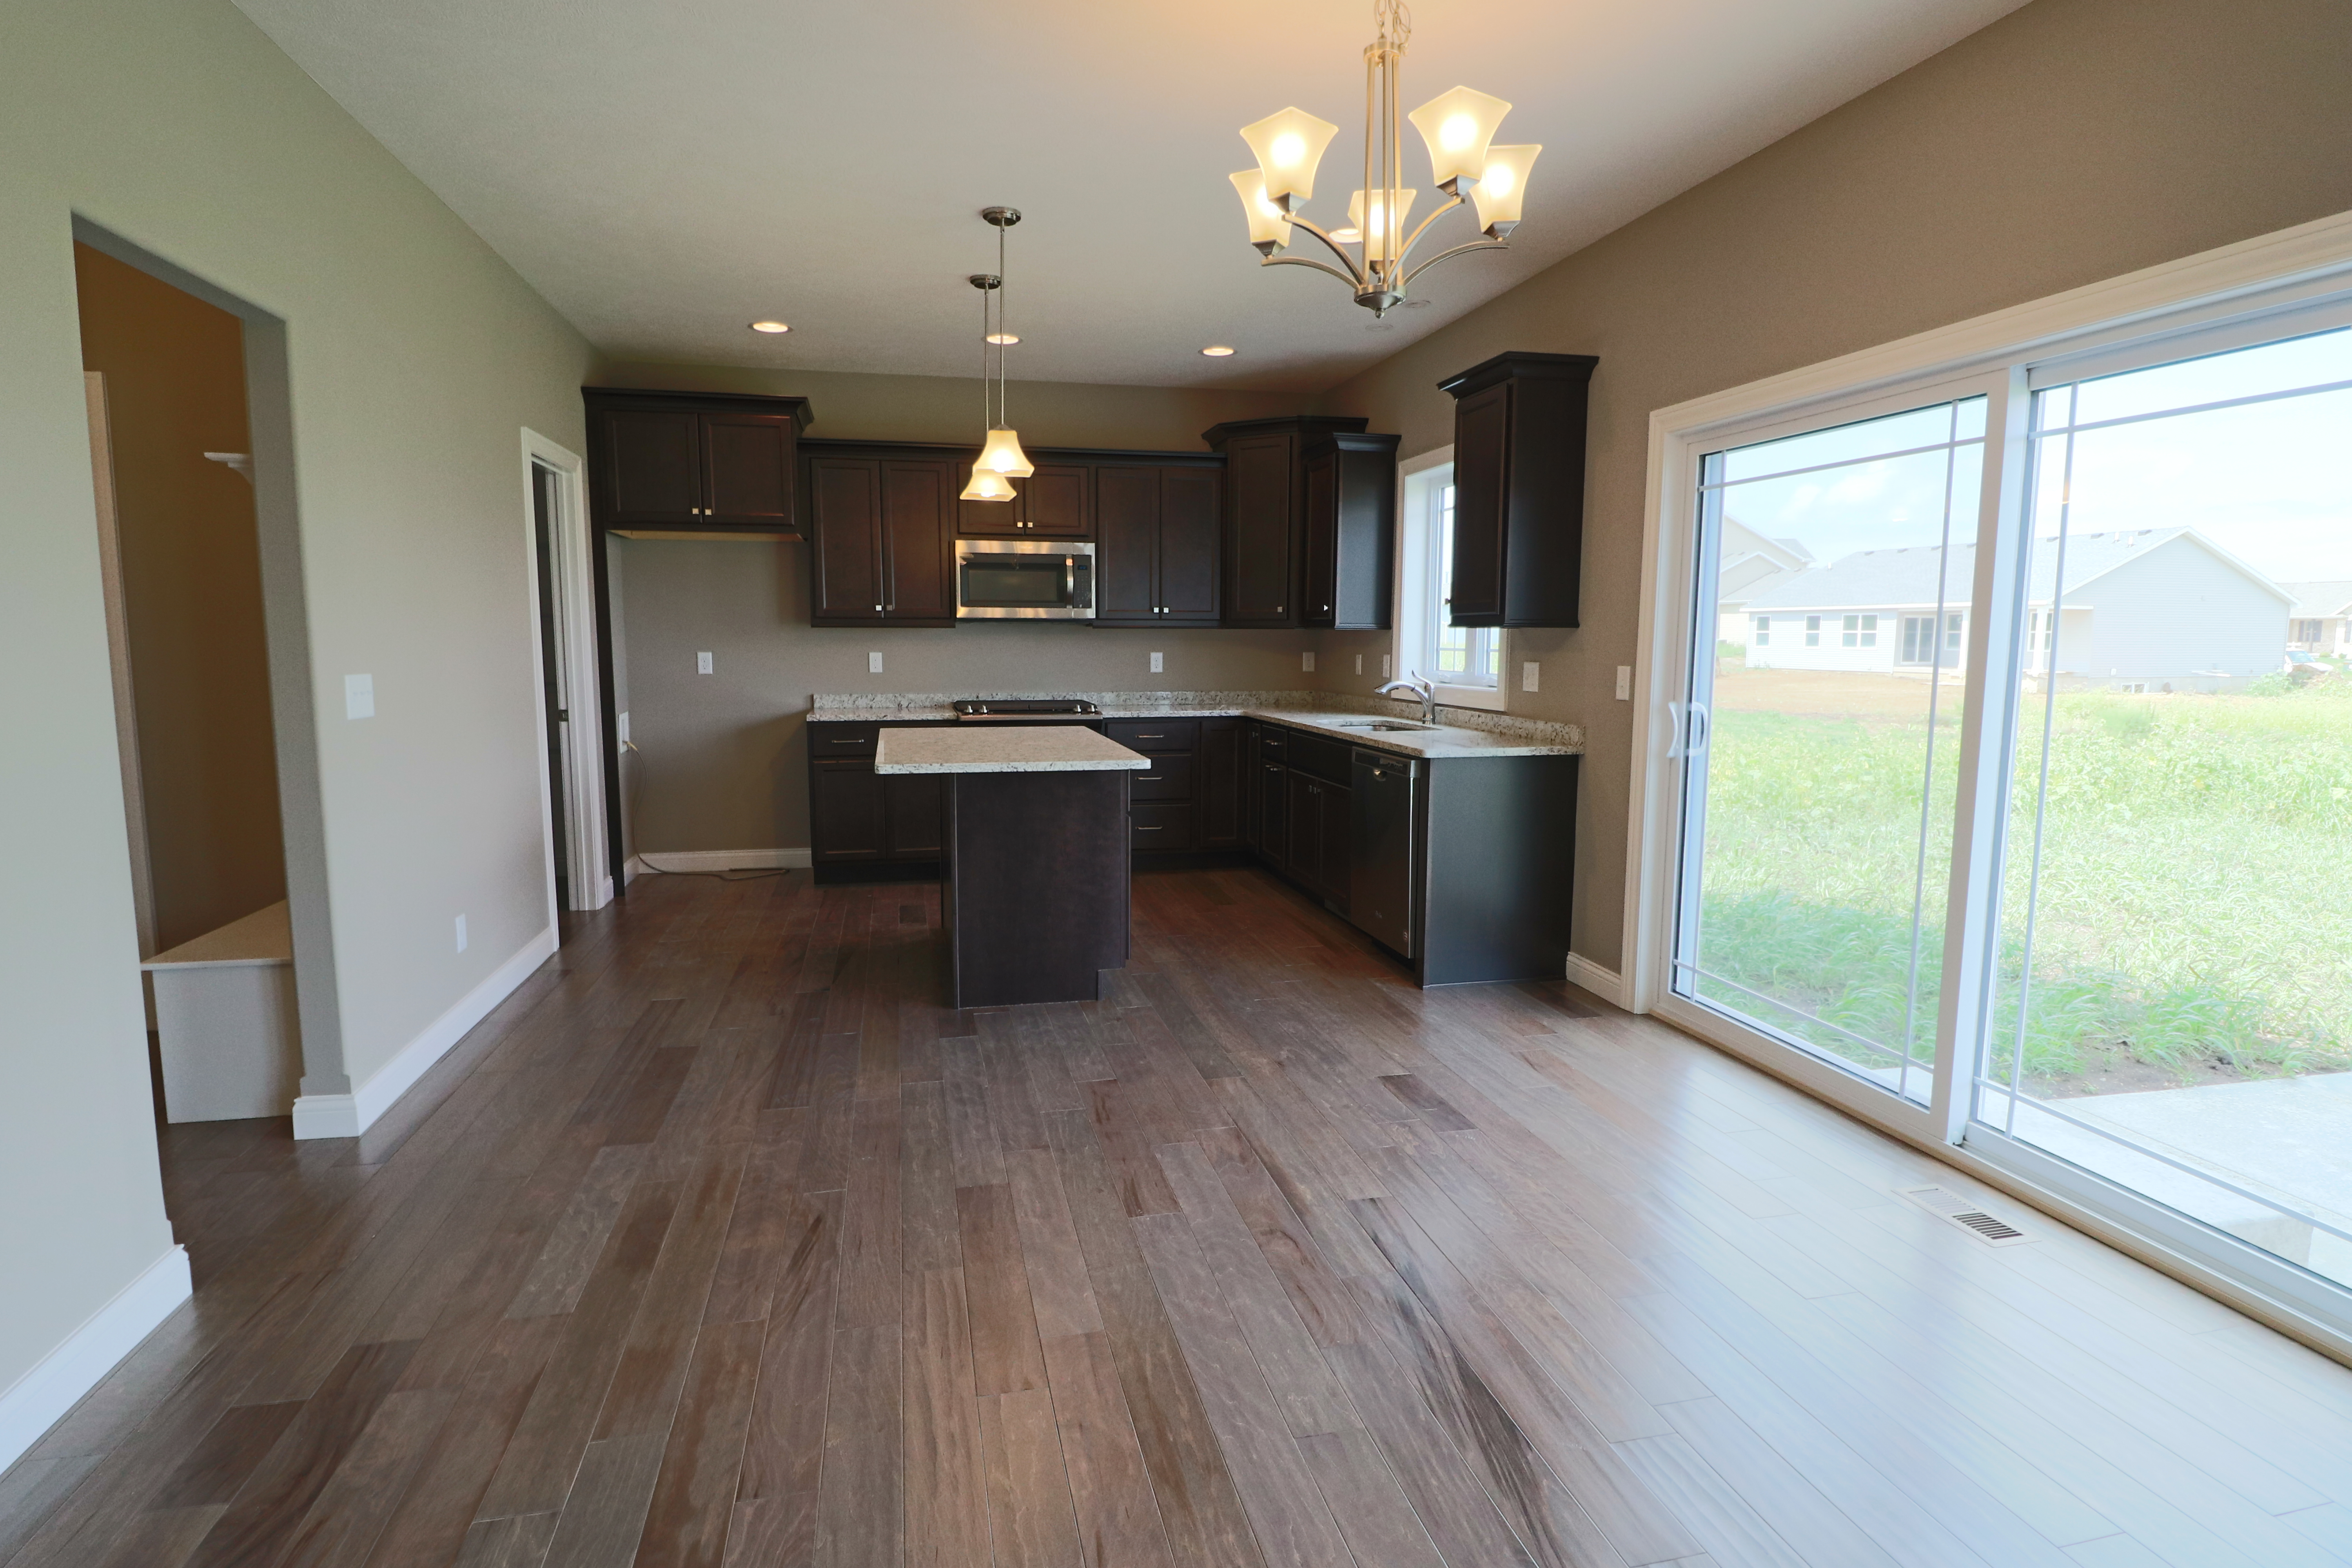 House for sale in the Dunlap peoria area kitchen